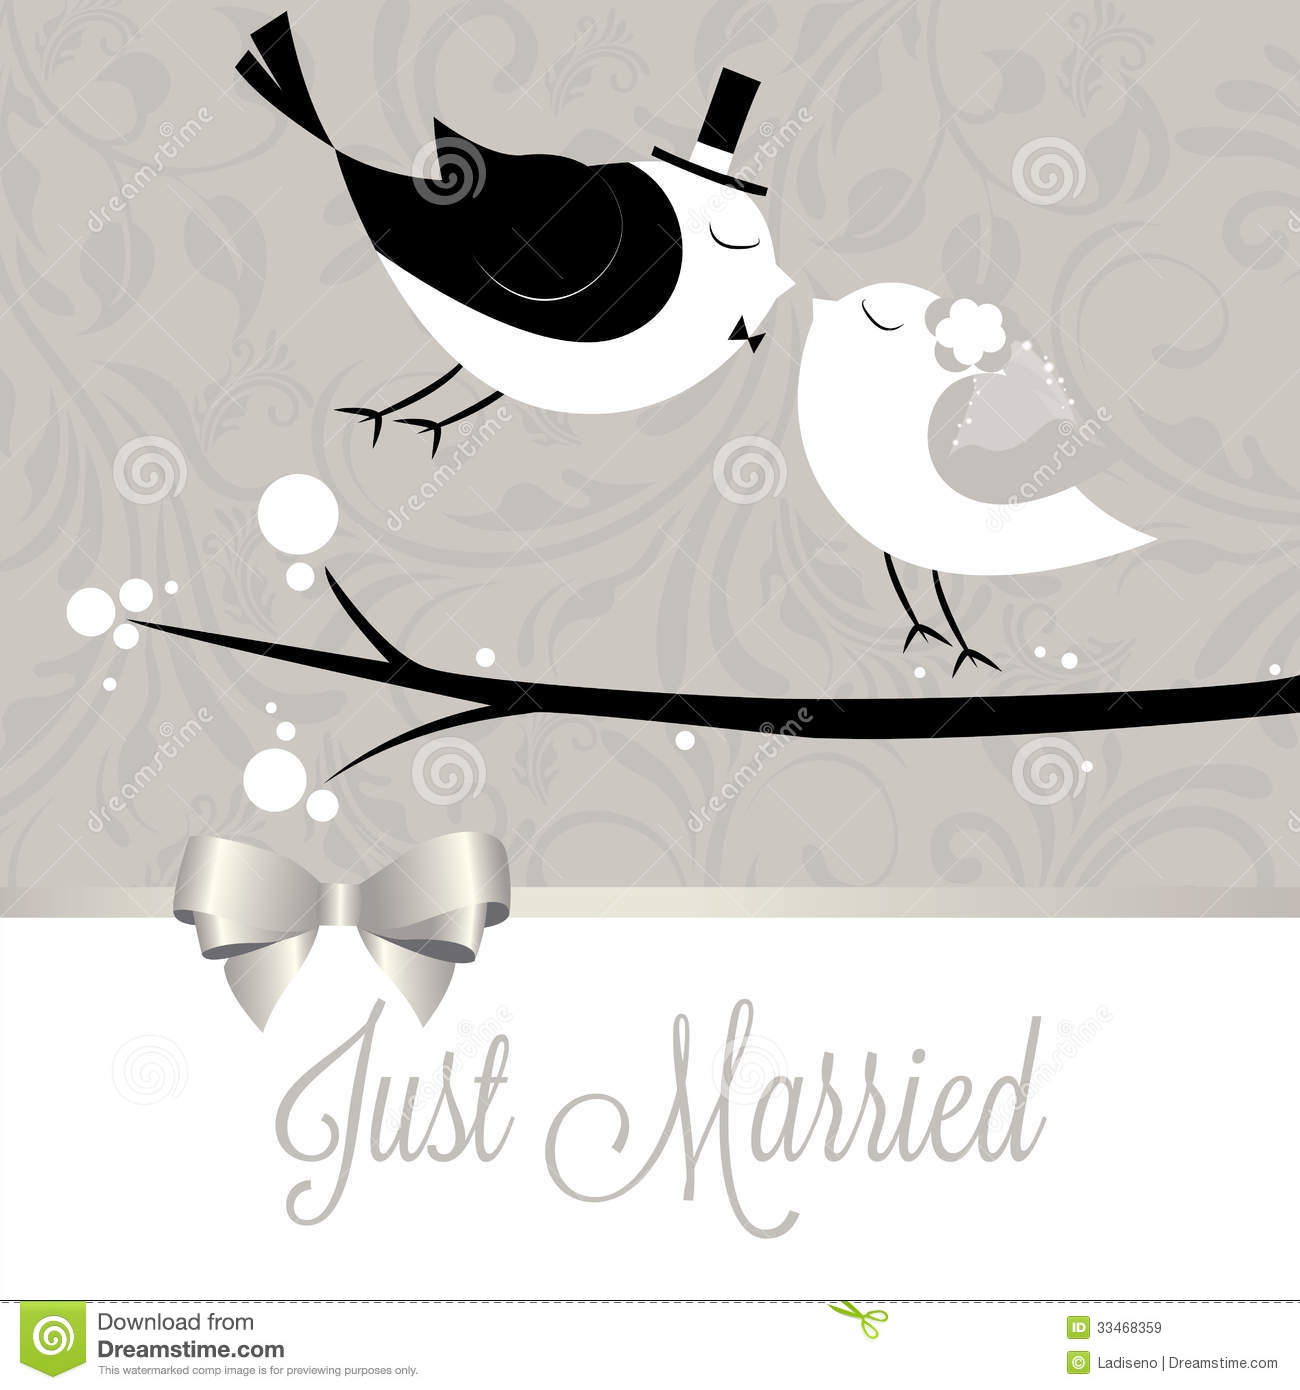 Just Married Royalty Free Stock Images - Image: 33468359